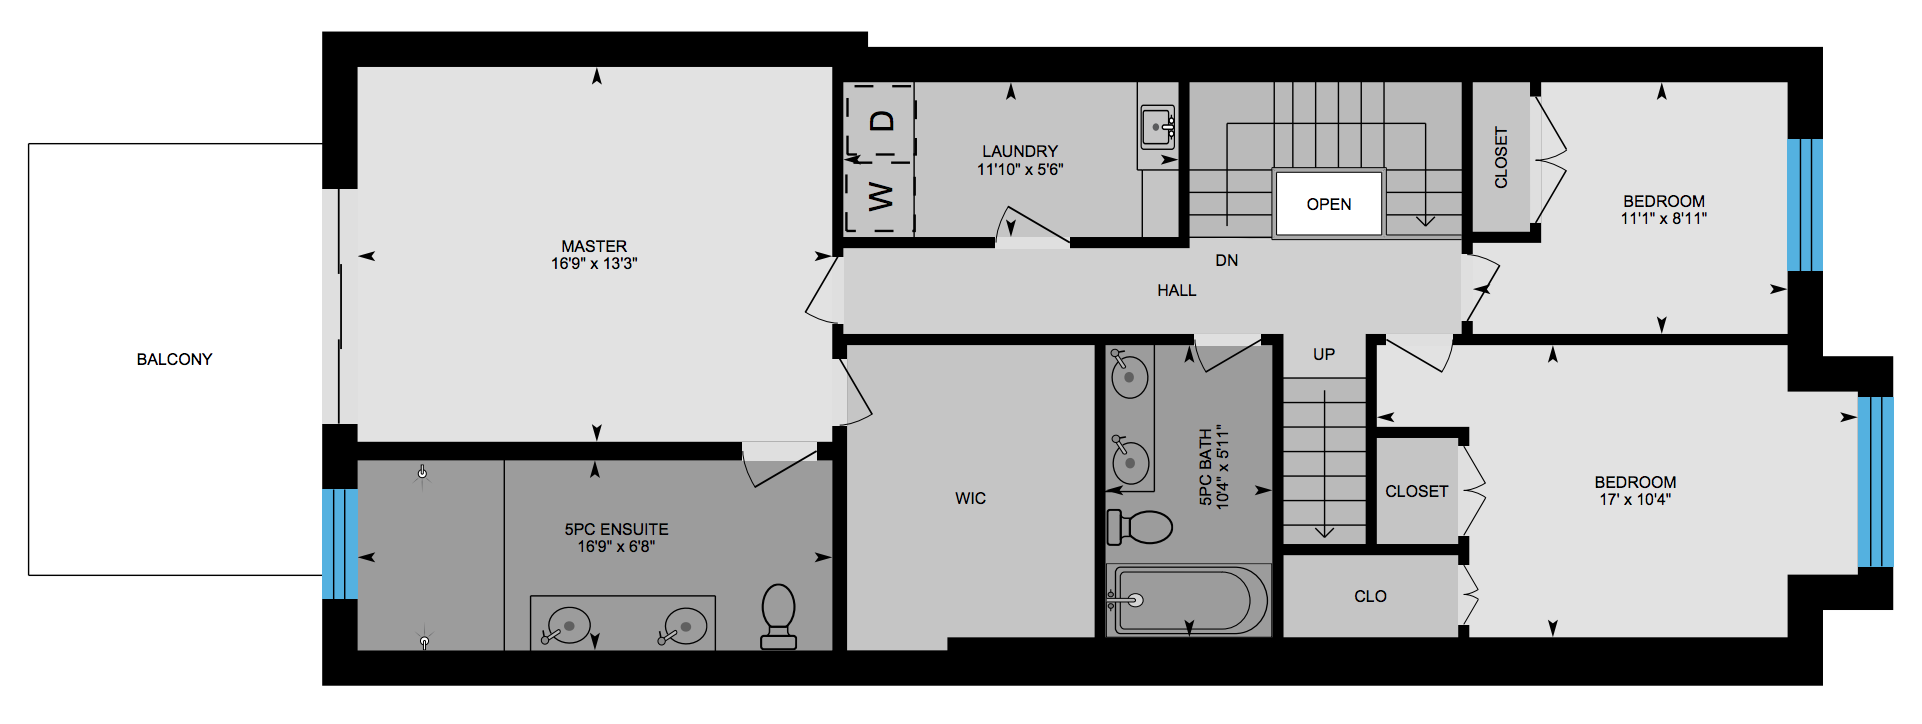 28 Columbine Ave 98.png